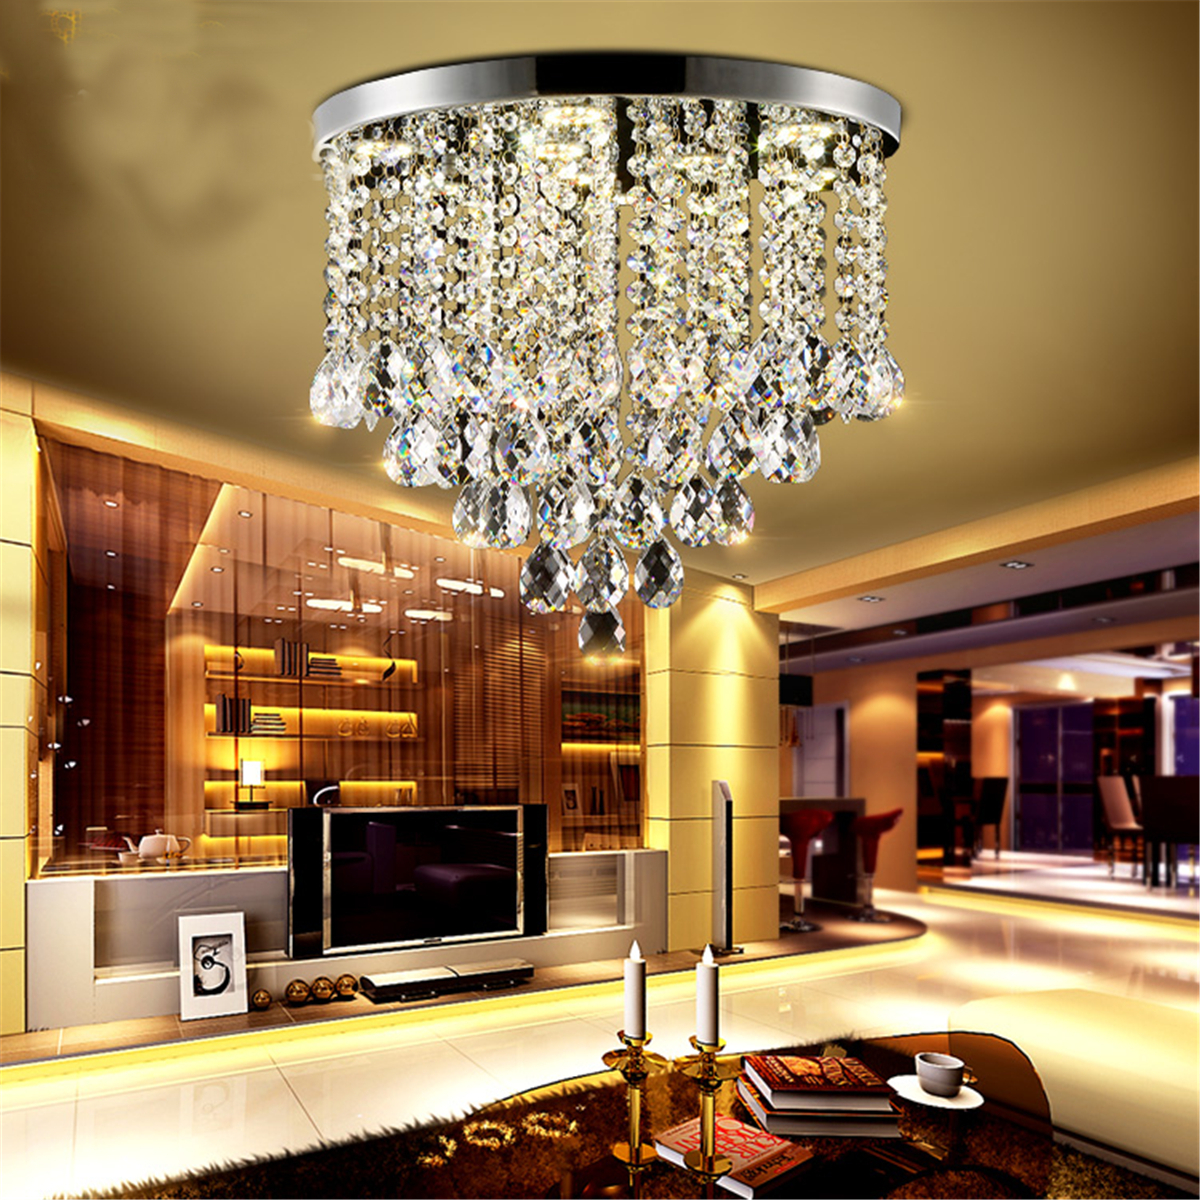 Modern crystal pendant light ceiling lamp chandelier for B q living room lights